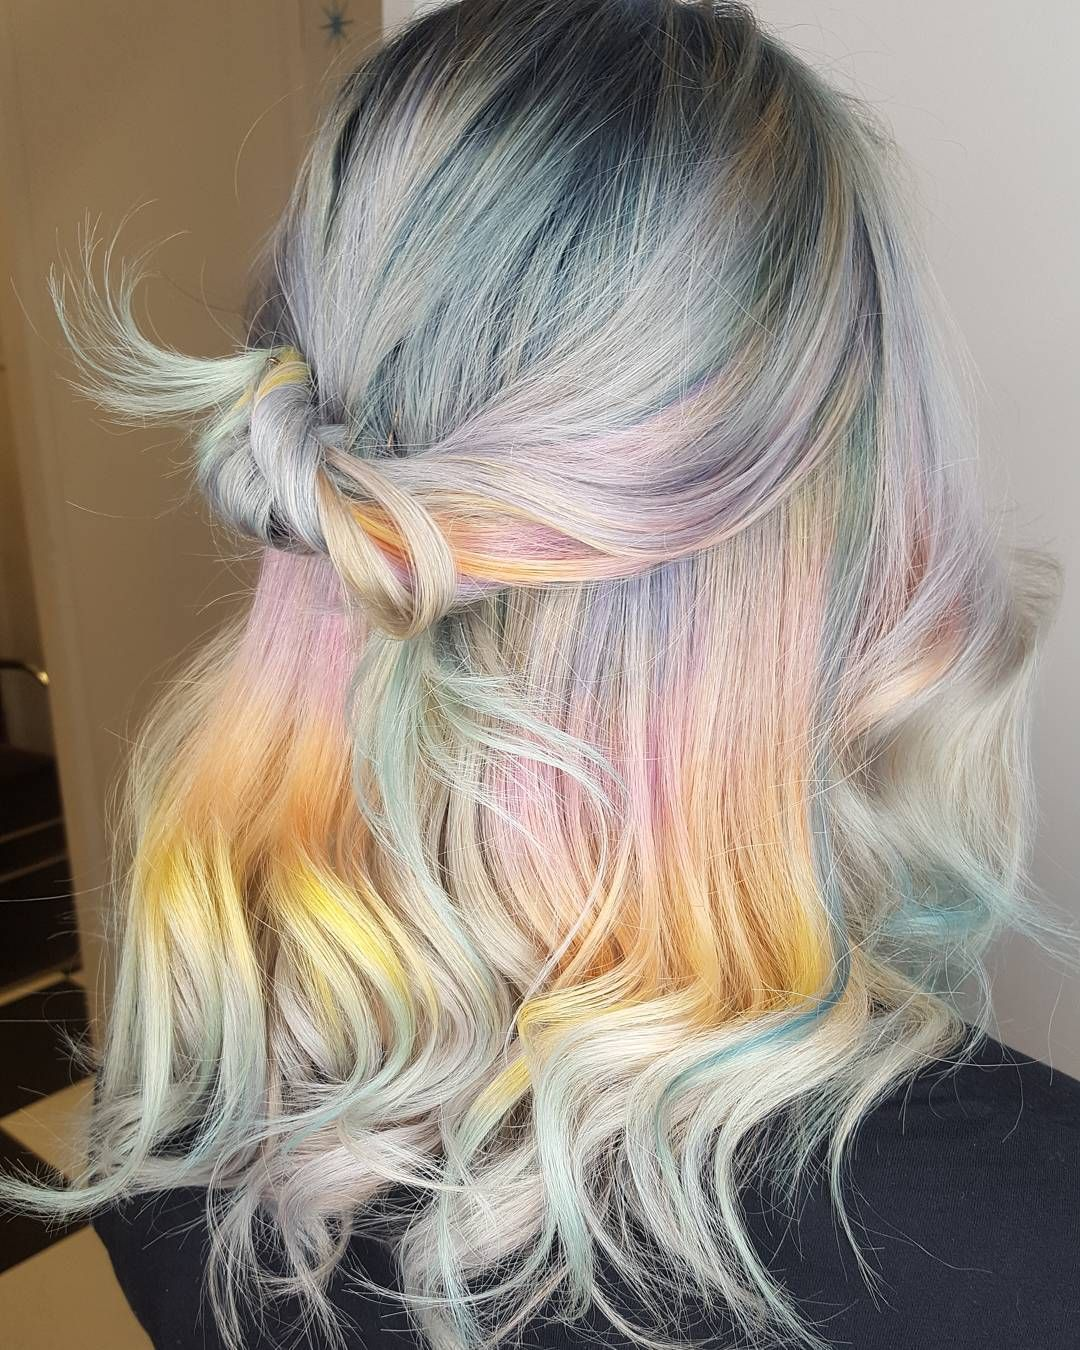 Holographic Hair is the Latest Trend to Take Over Instagram ...